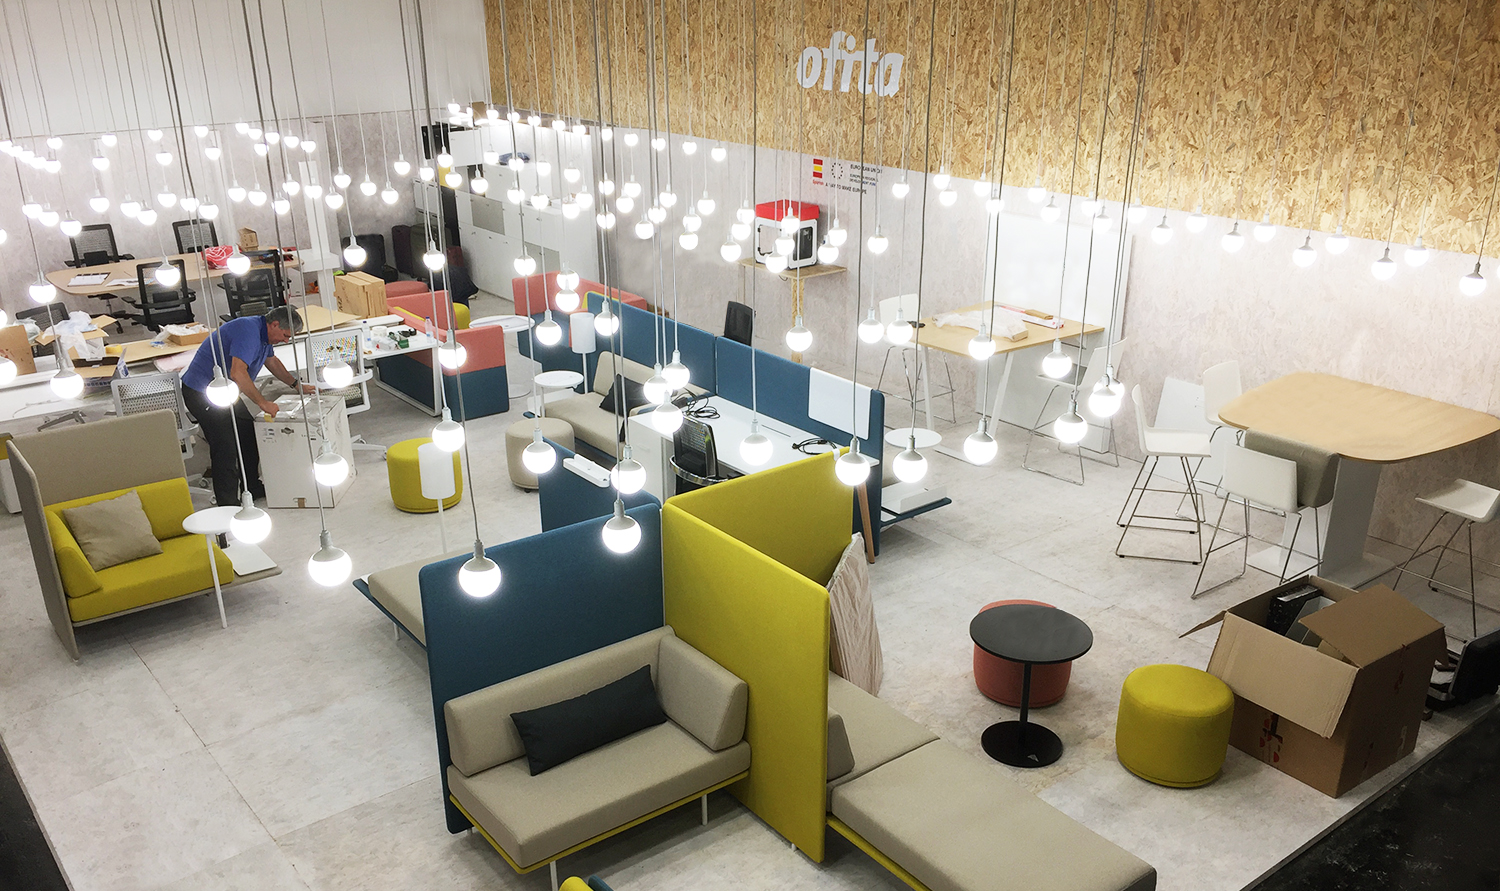 Ofita Stand. Orgatec. Cologne, Germany